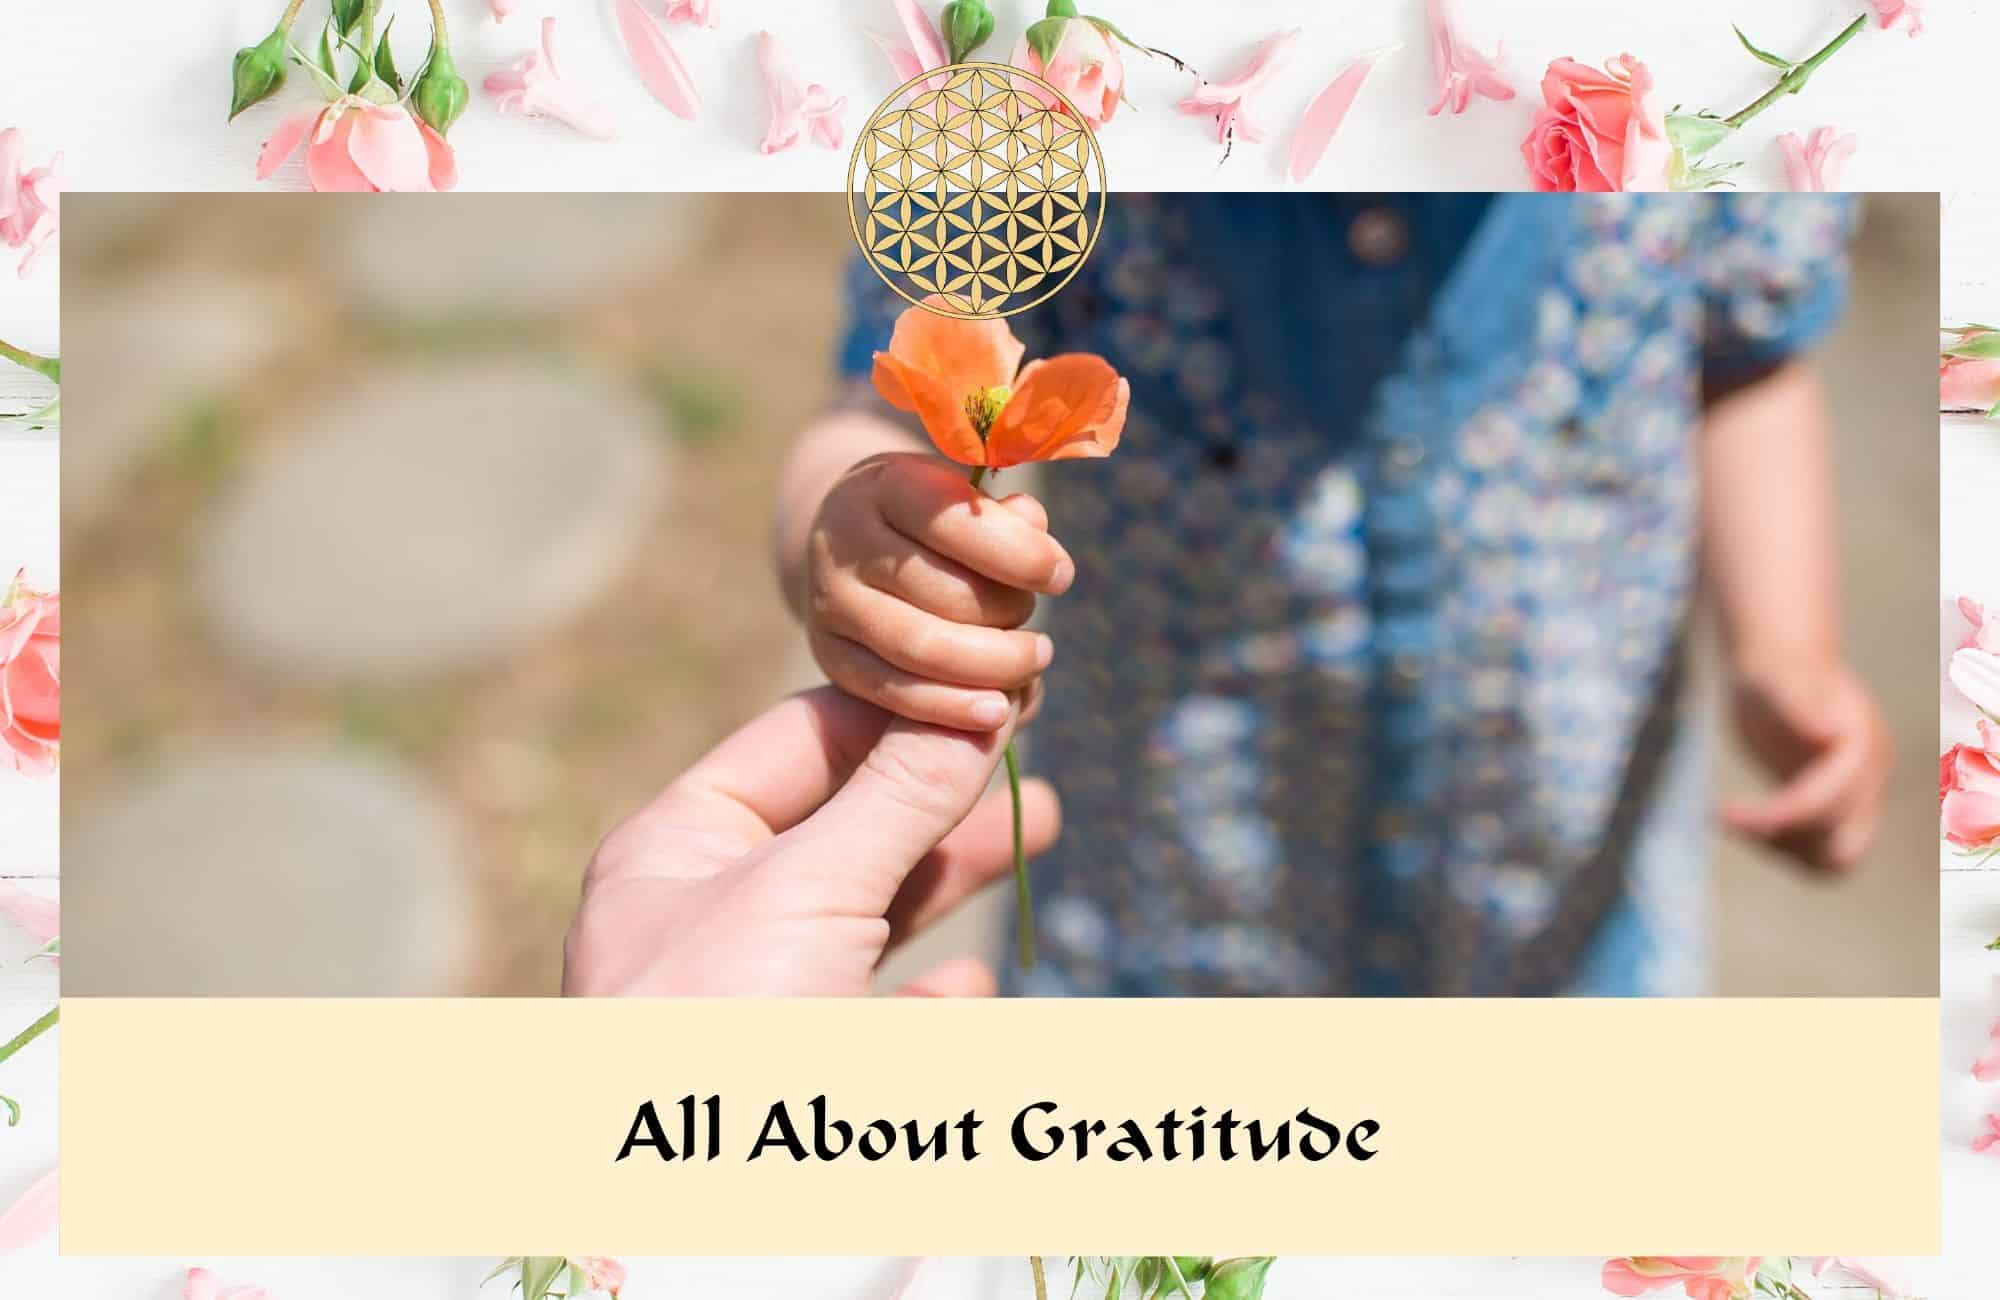 All about gratitude - Flower Essences & Remedies - Flowers for Healing